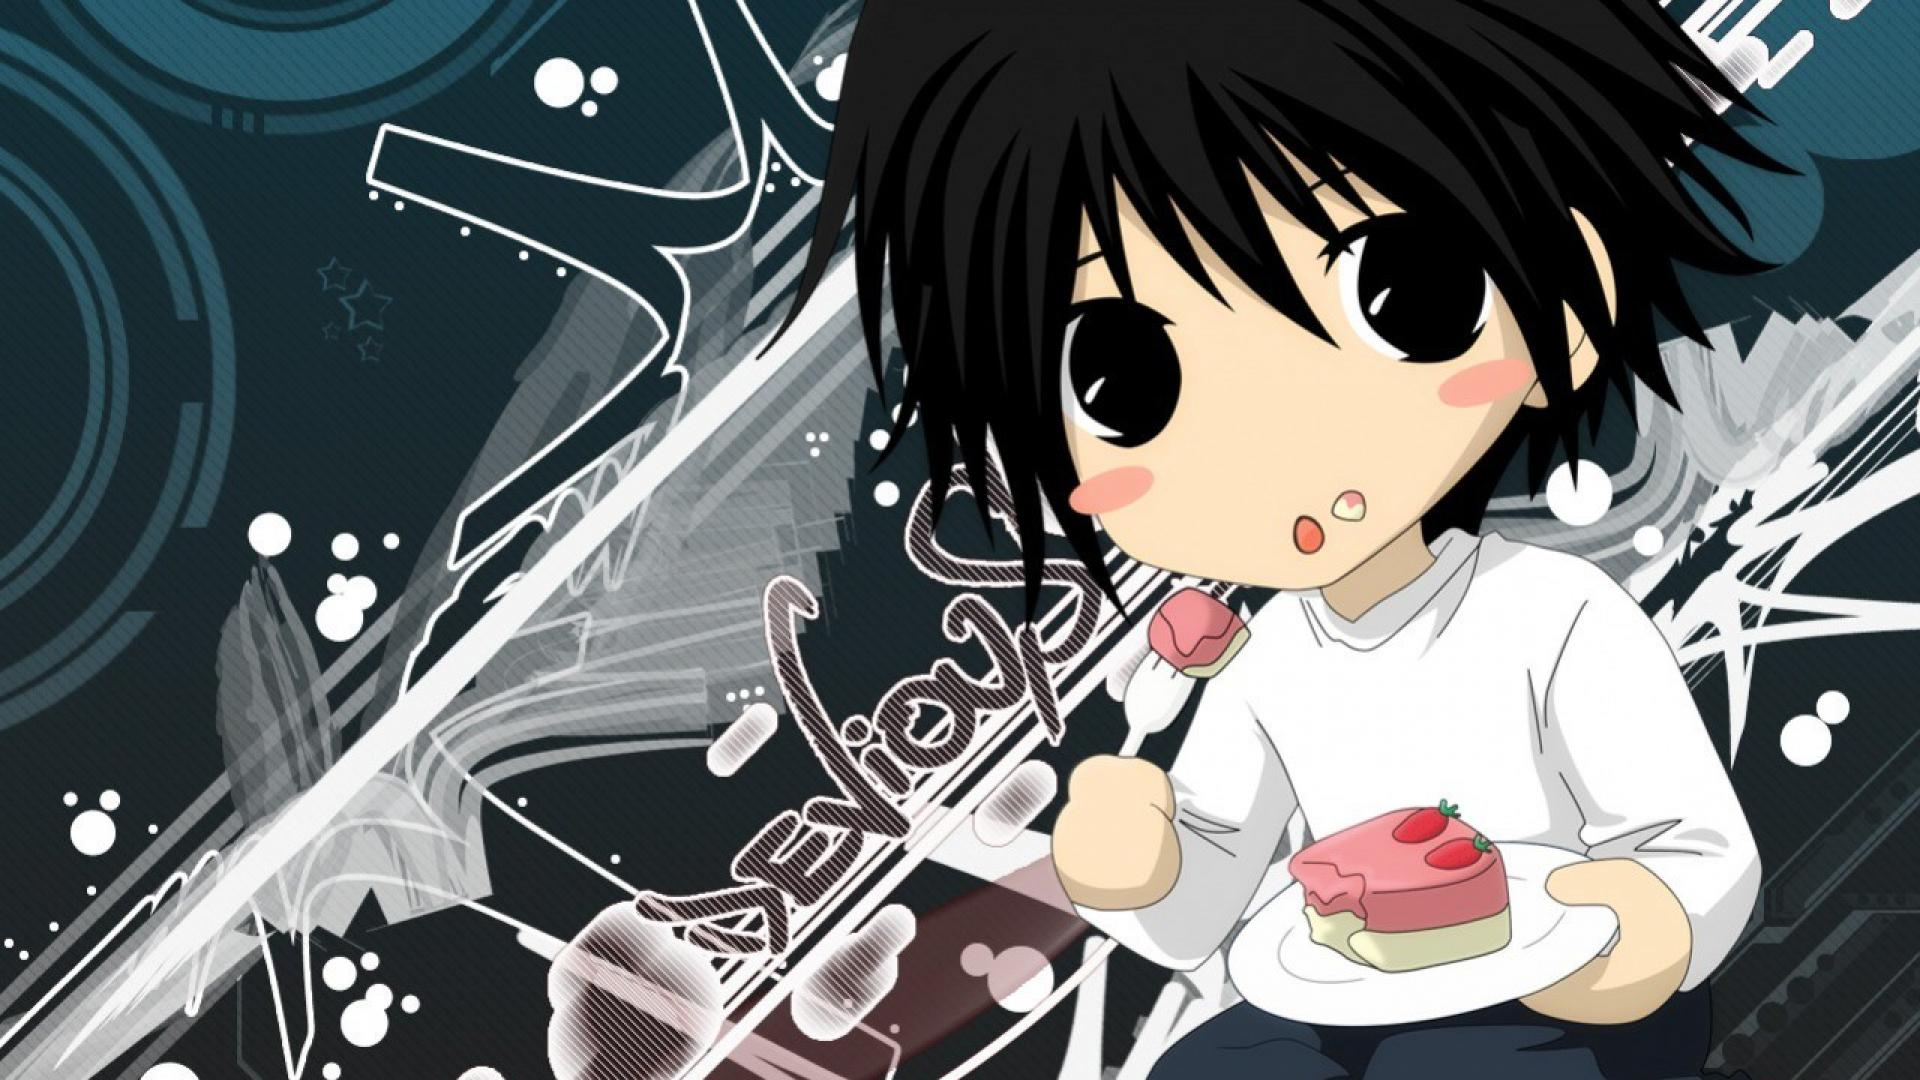 Death Note Chibi Wallpapers Top Free Death Note Chibi Backgrounds Wallpaperaccess